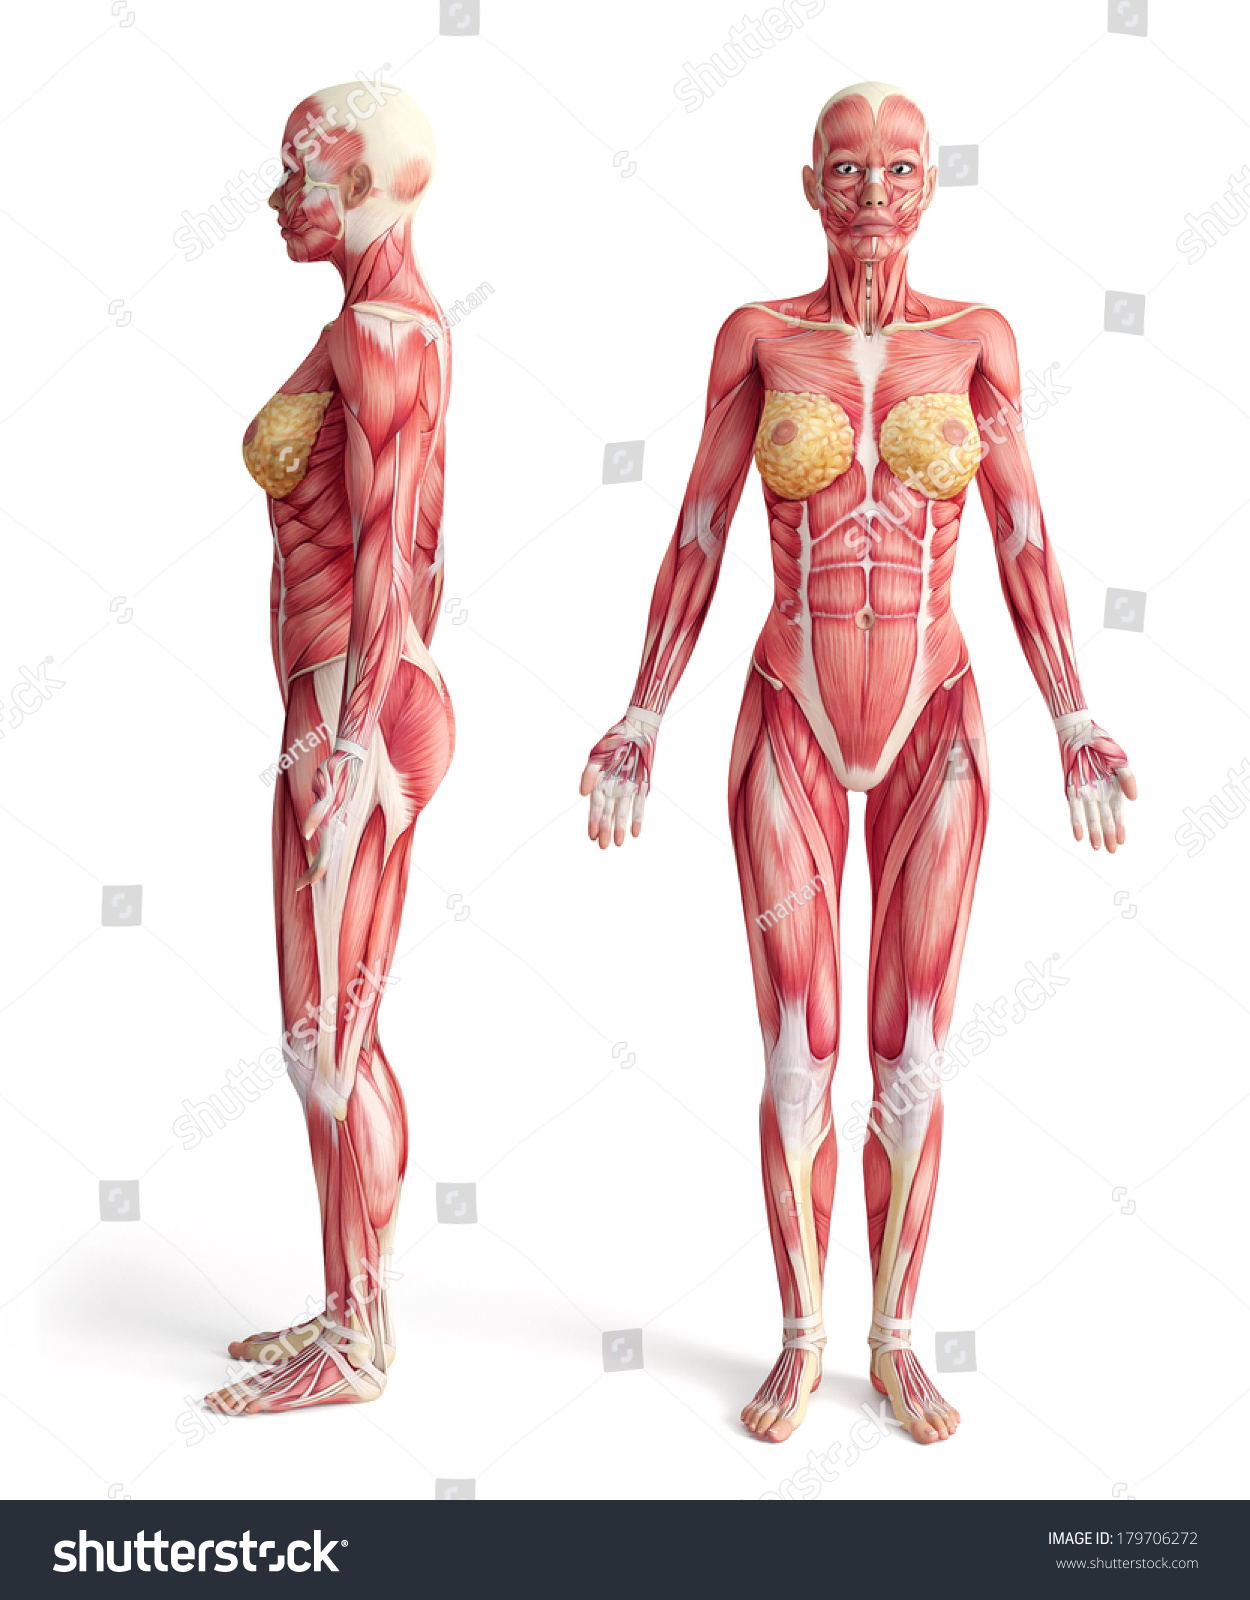 Female human anatomy